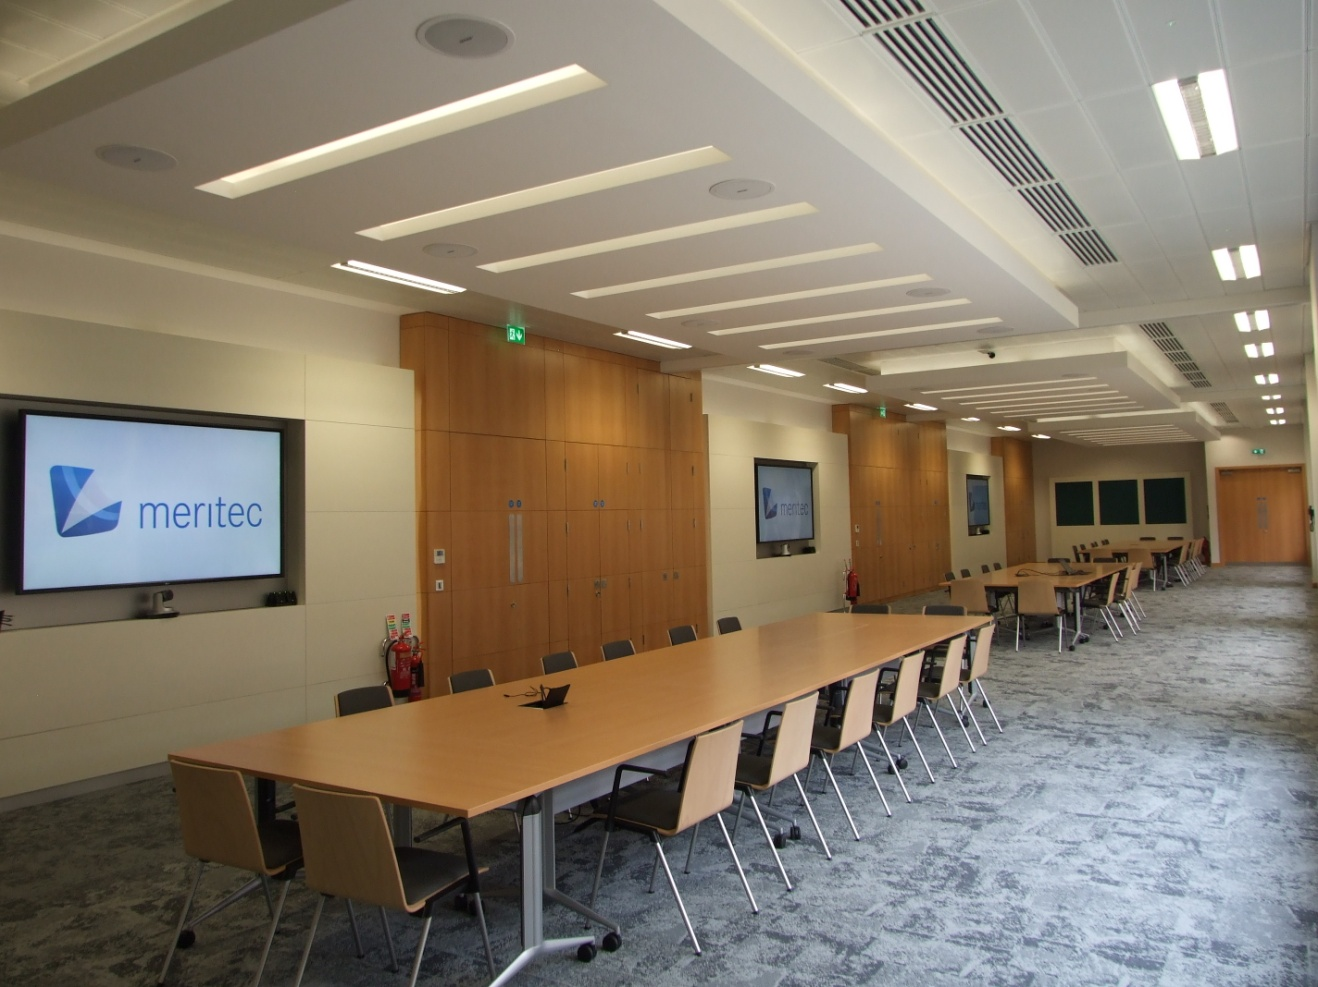 Audio Visual Fit Out for Failte Ireland by Meritec